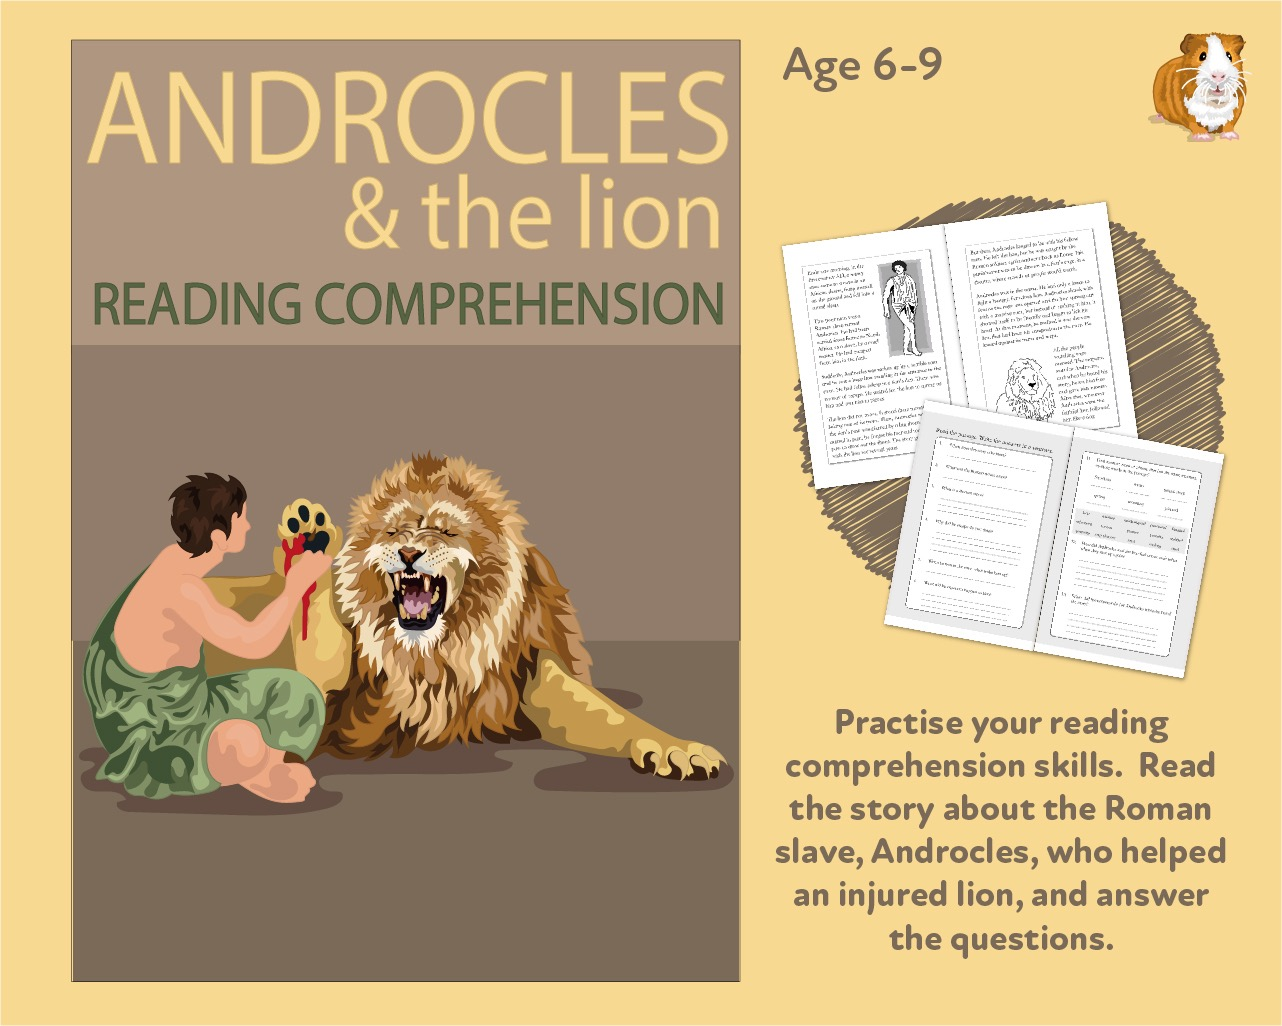 Let's Practise Our Reading Comprehension: The Story Of Androcles And The Lion (6-9 years)